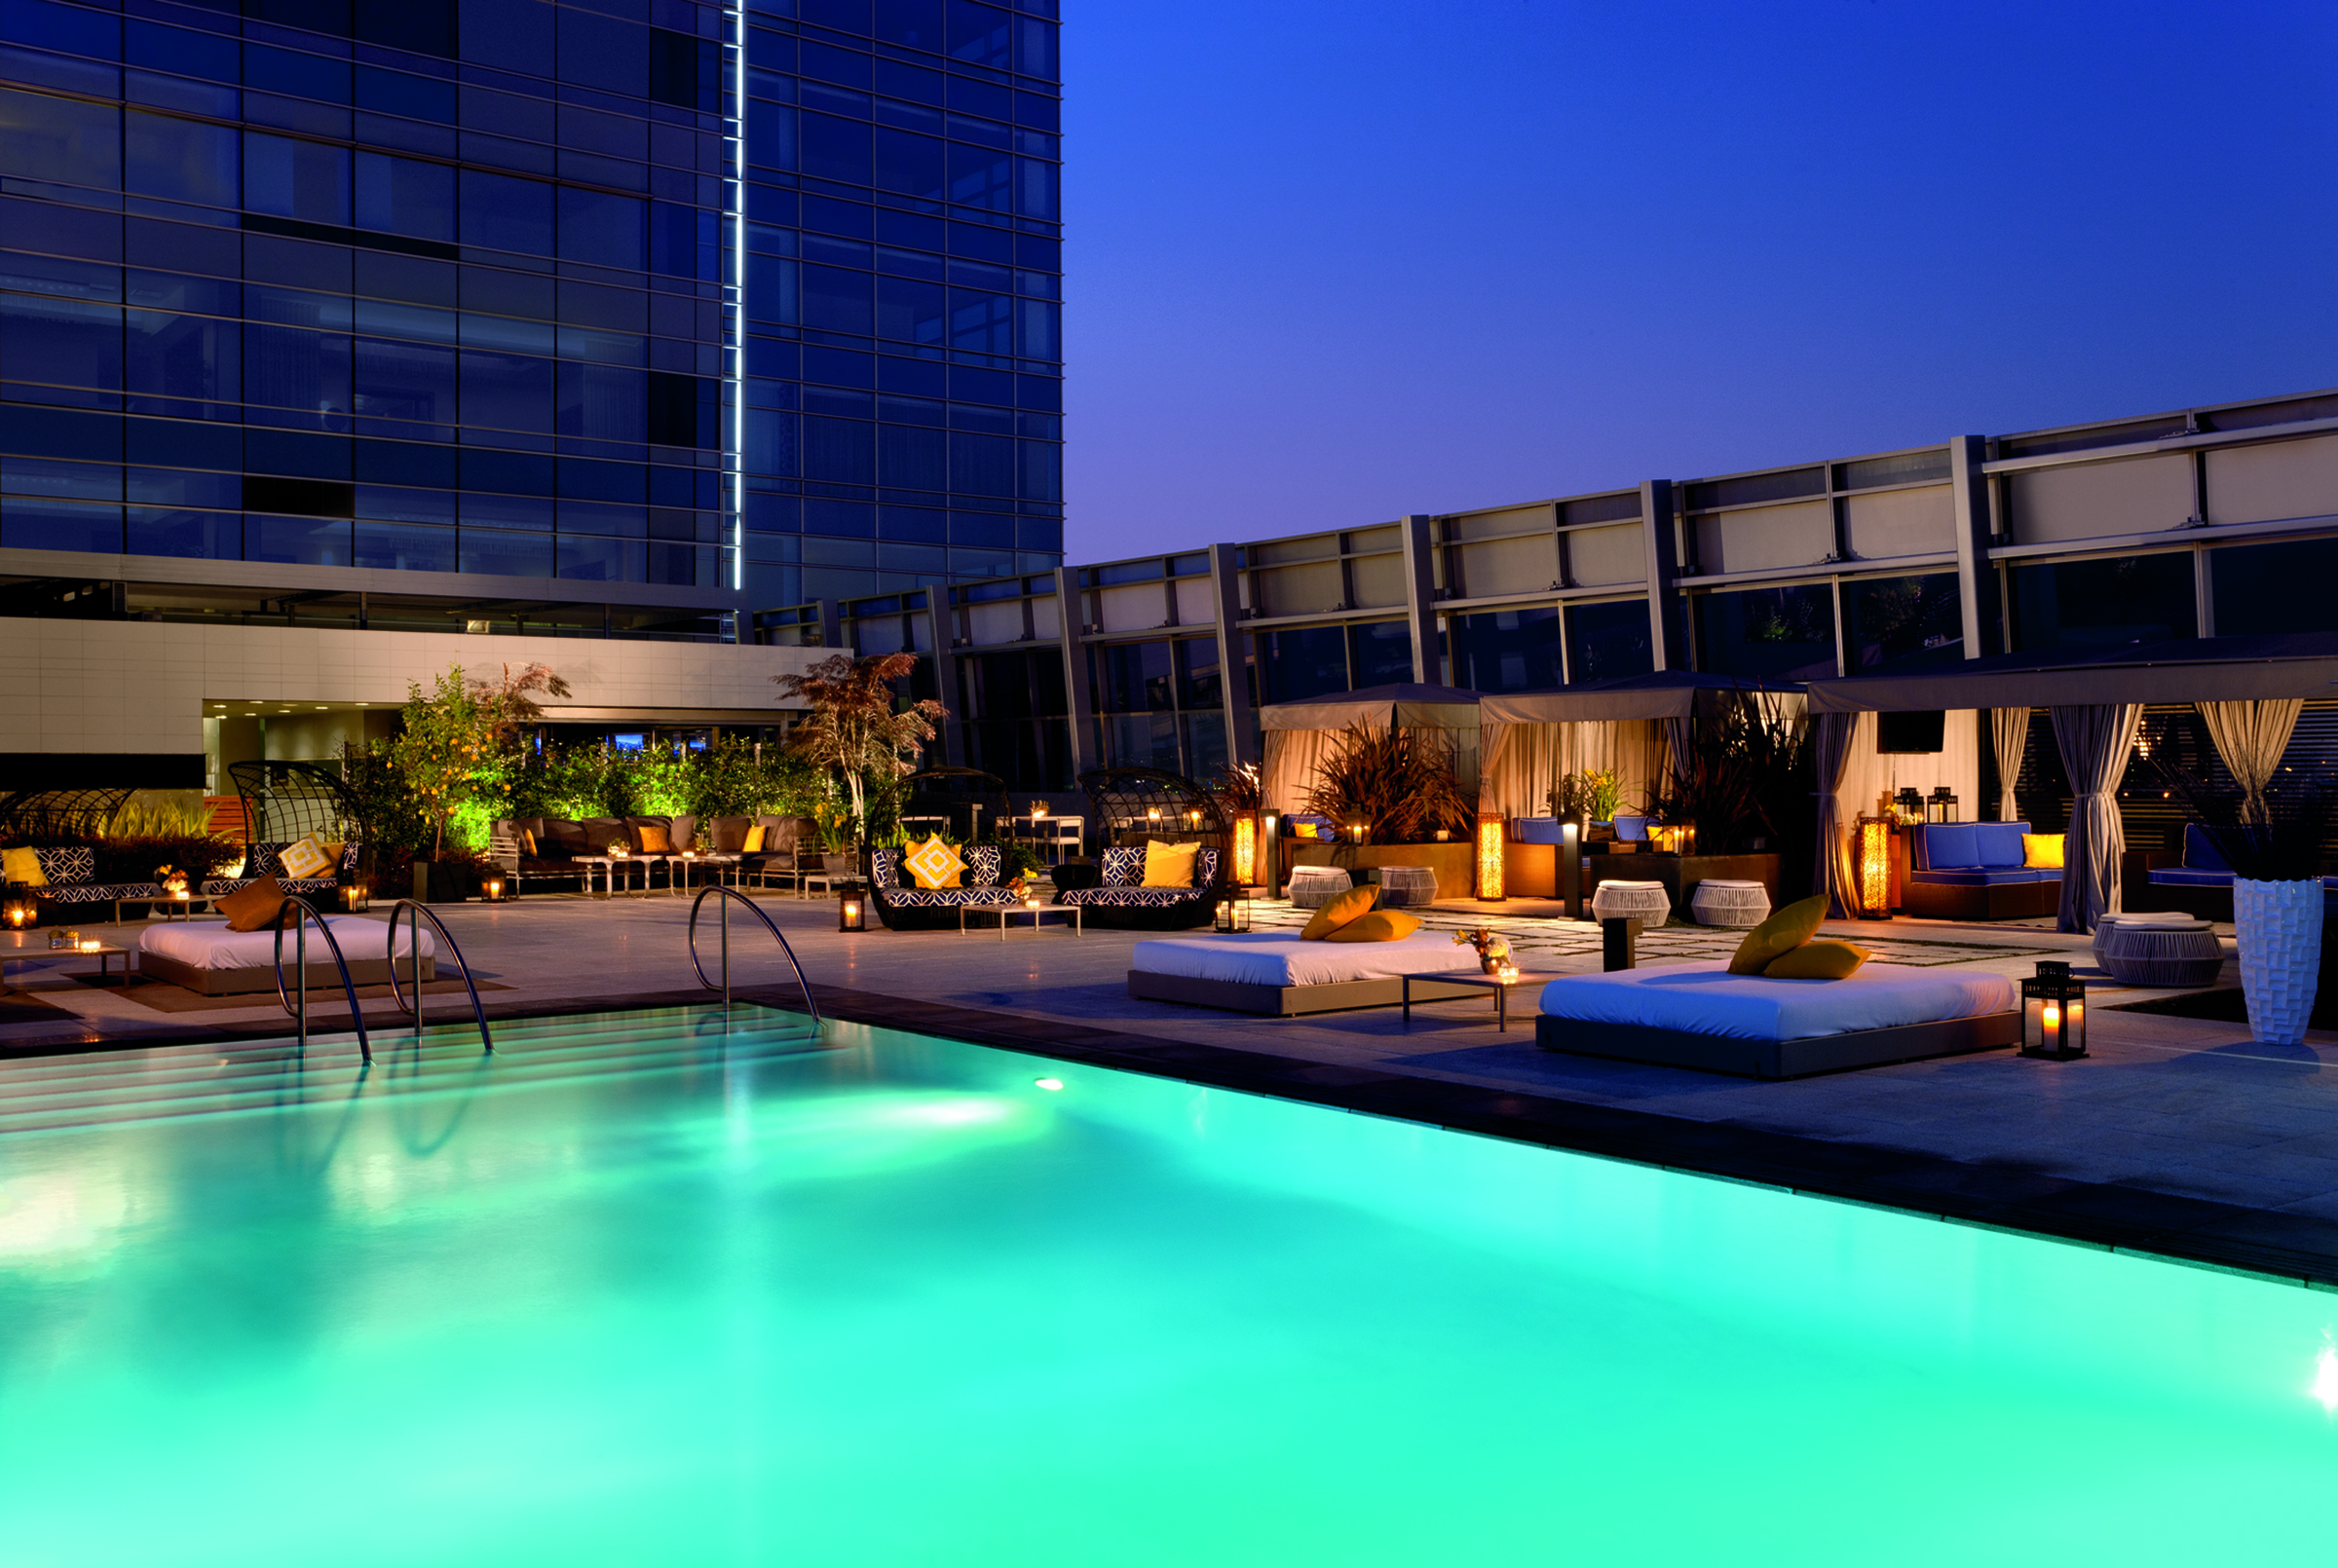 Ritz-Carlton Los Angeles California Stati Uniti